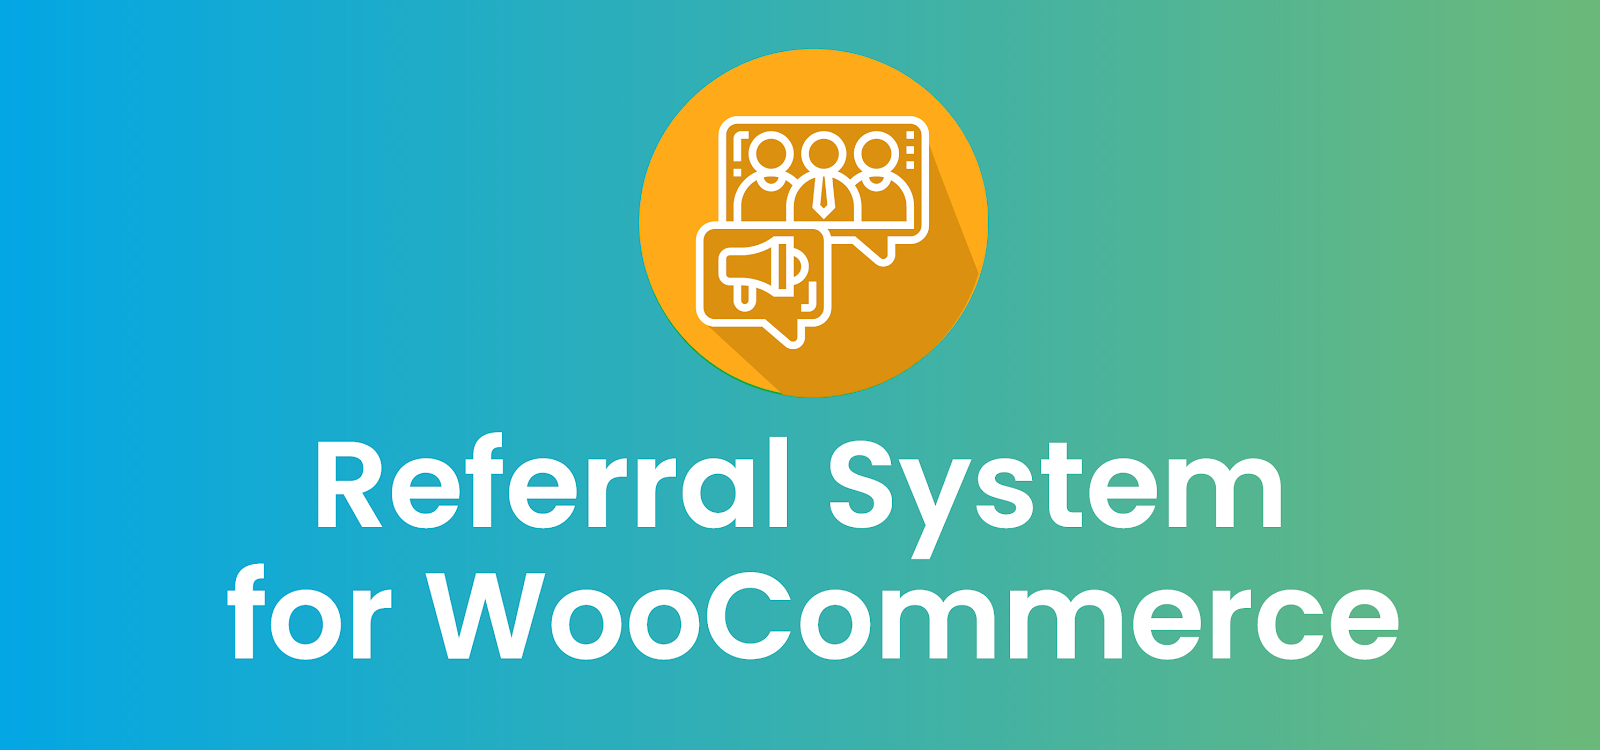 Referral System for WooCommerce